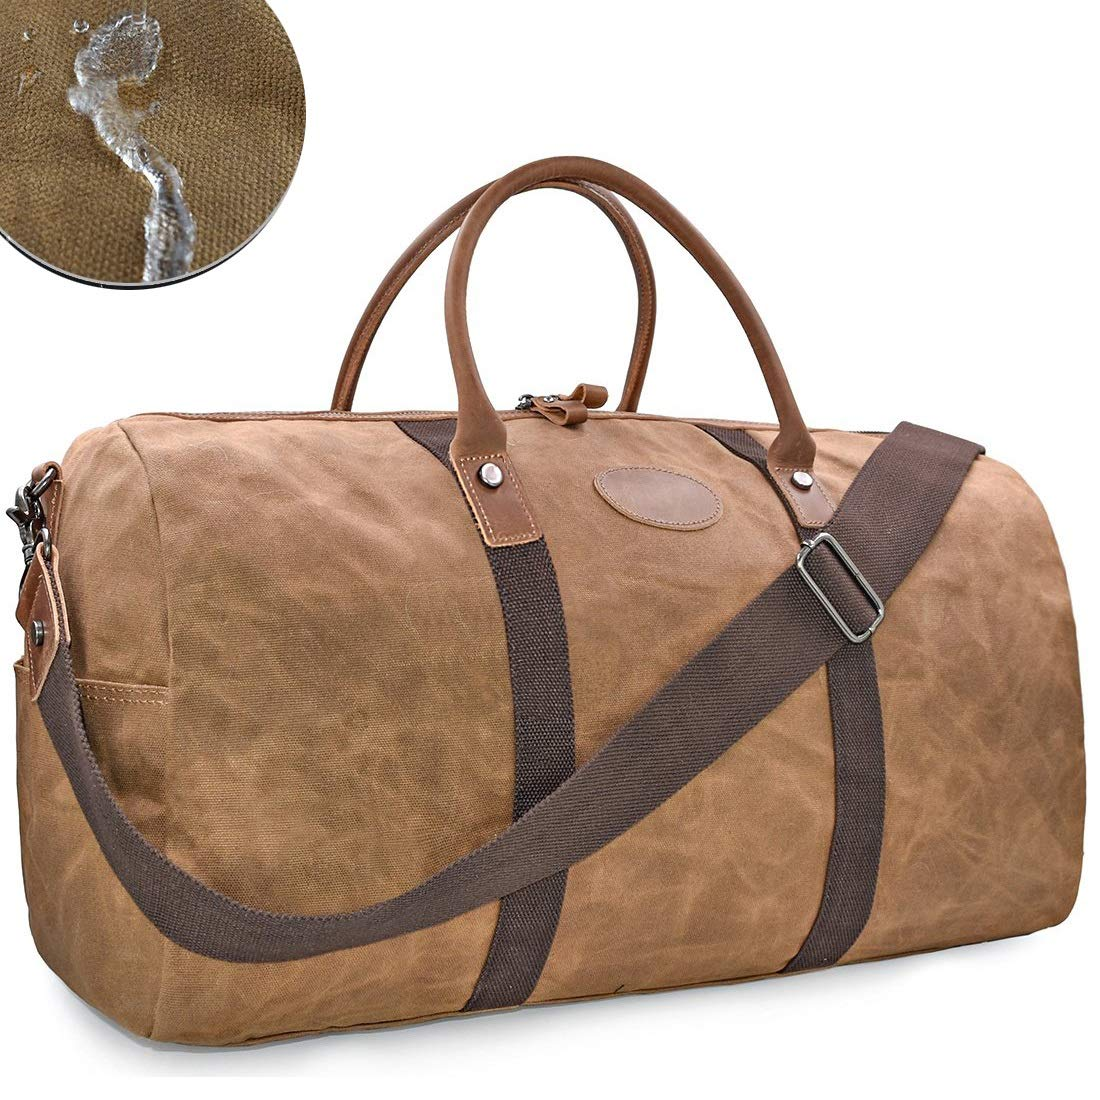 VOVIJ Waxed Canvas Waterproof Sports Gym Bag,with Shoes Compartment & Wet Pocket,45L (Color : Brown)